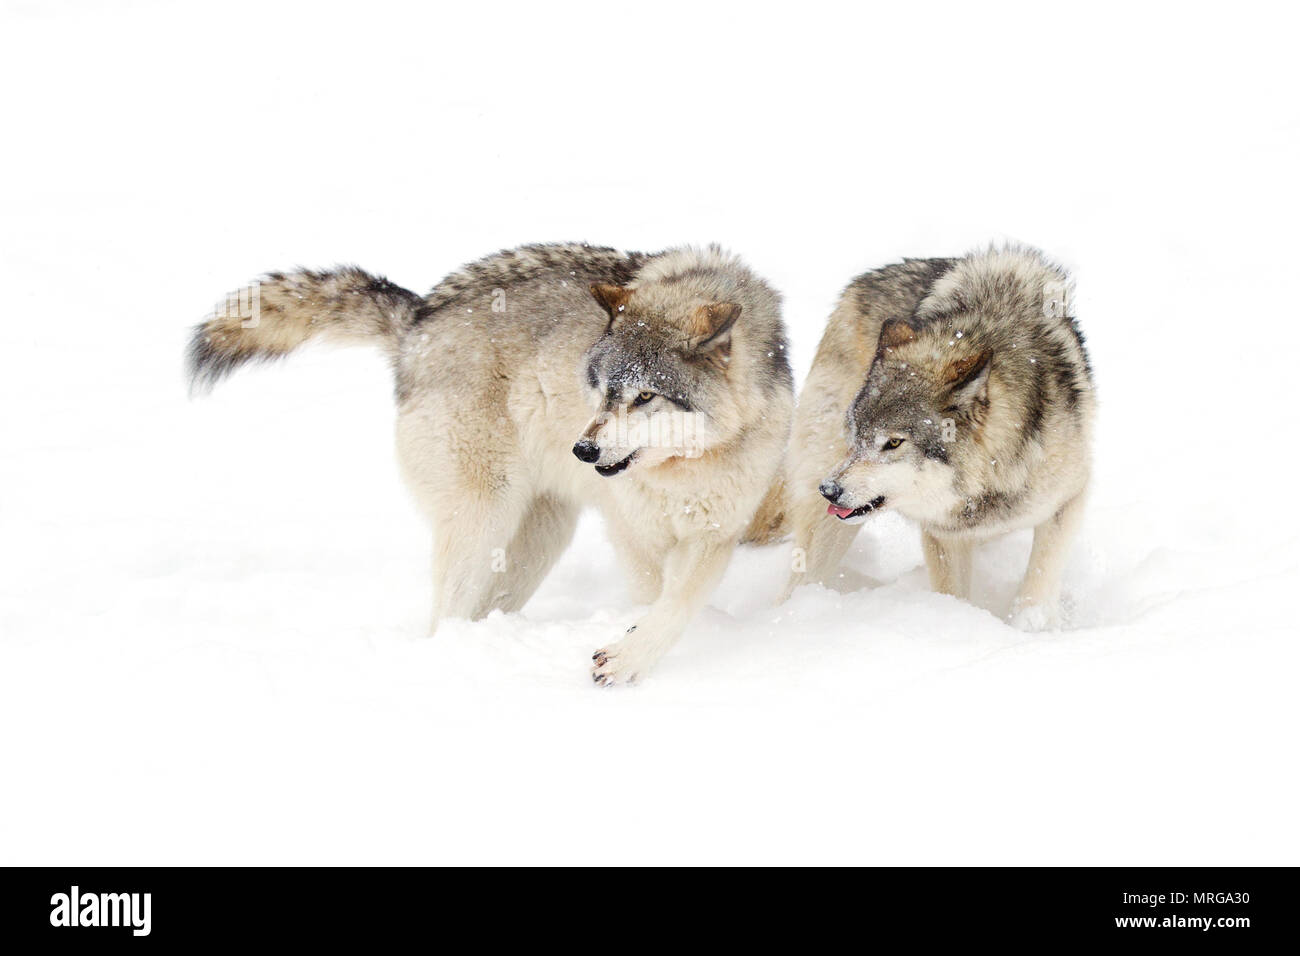 Timber wolf or Grey wolf (Canis lupus) standing in the winter snow in Canada - Stock Image